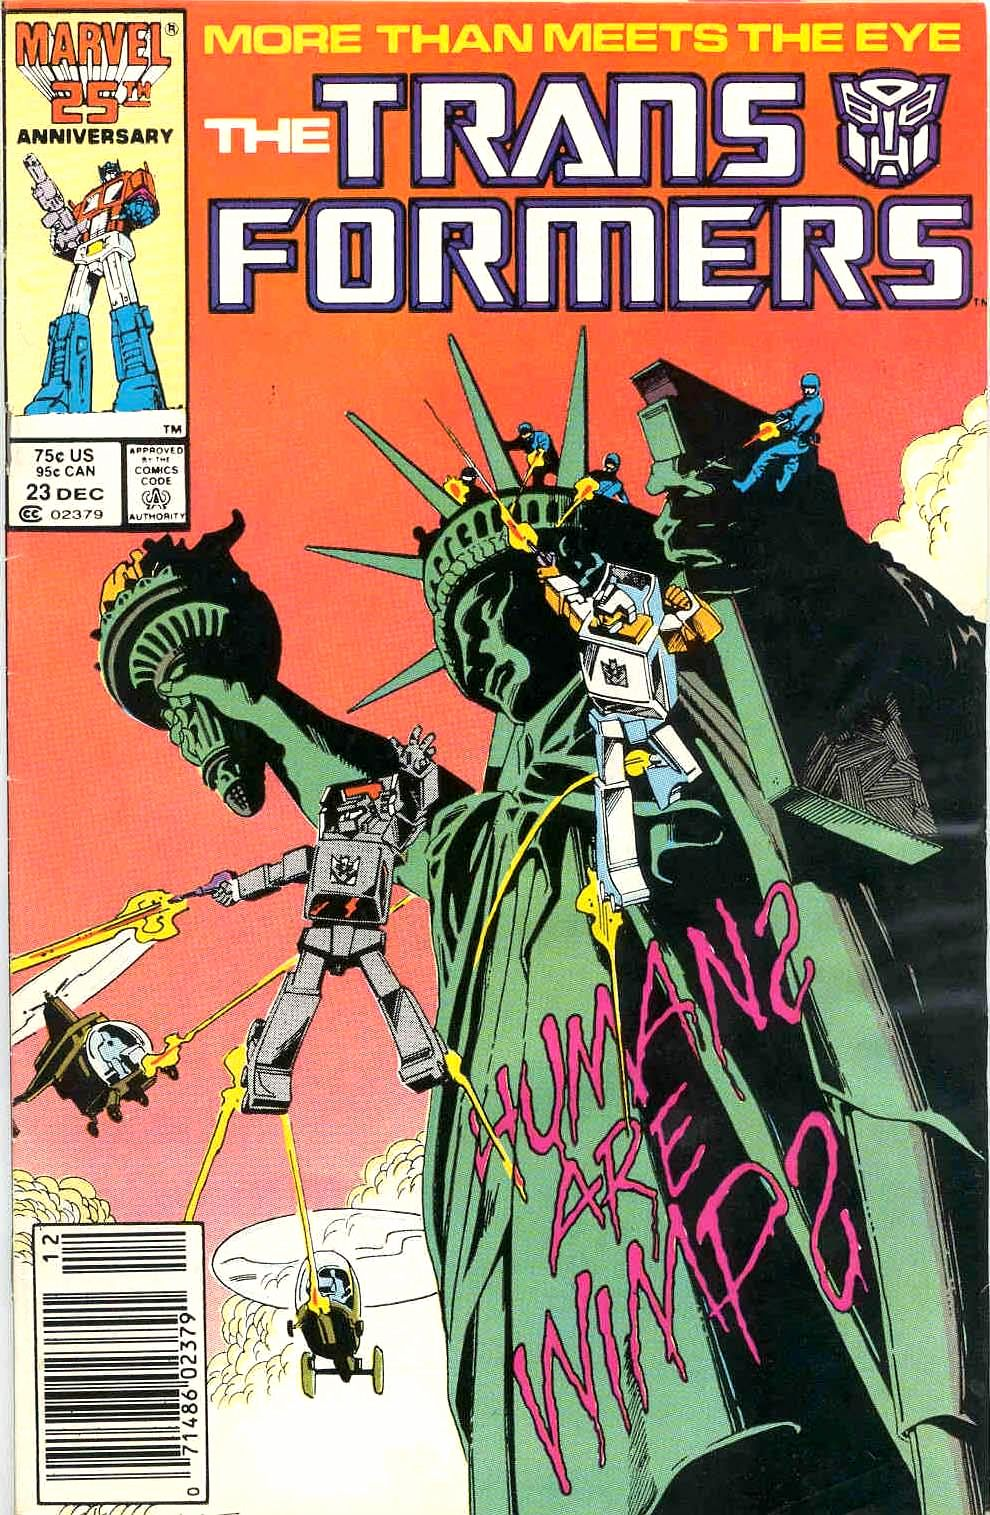 Cover Art:  Herb Trimpe